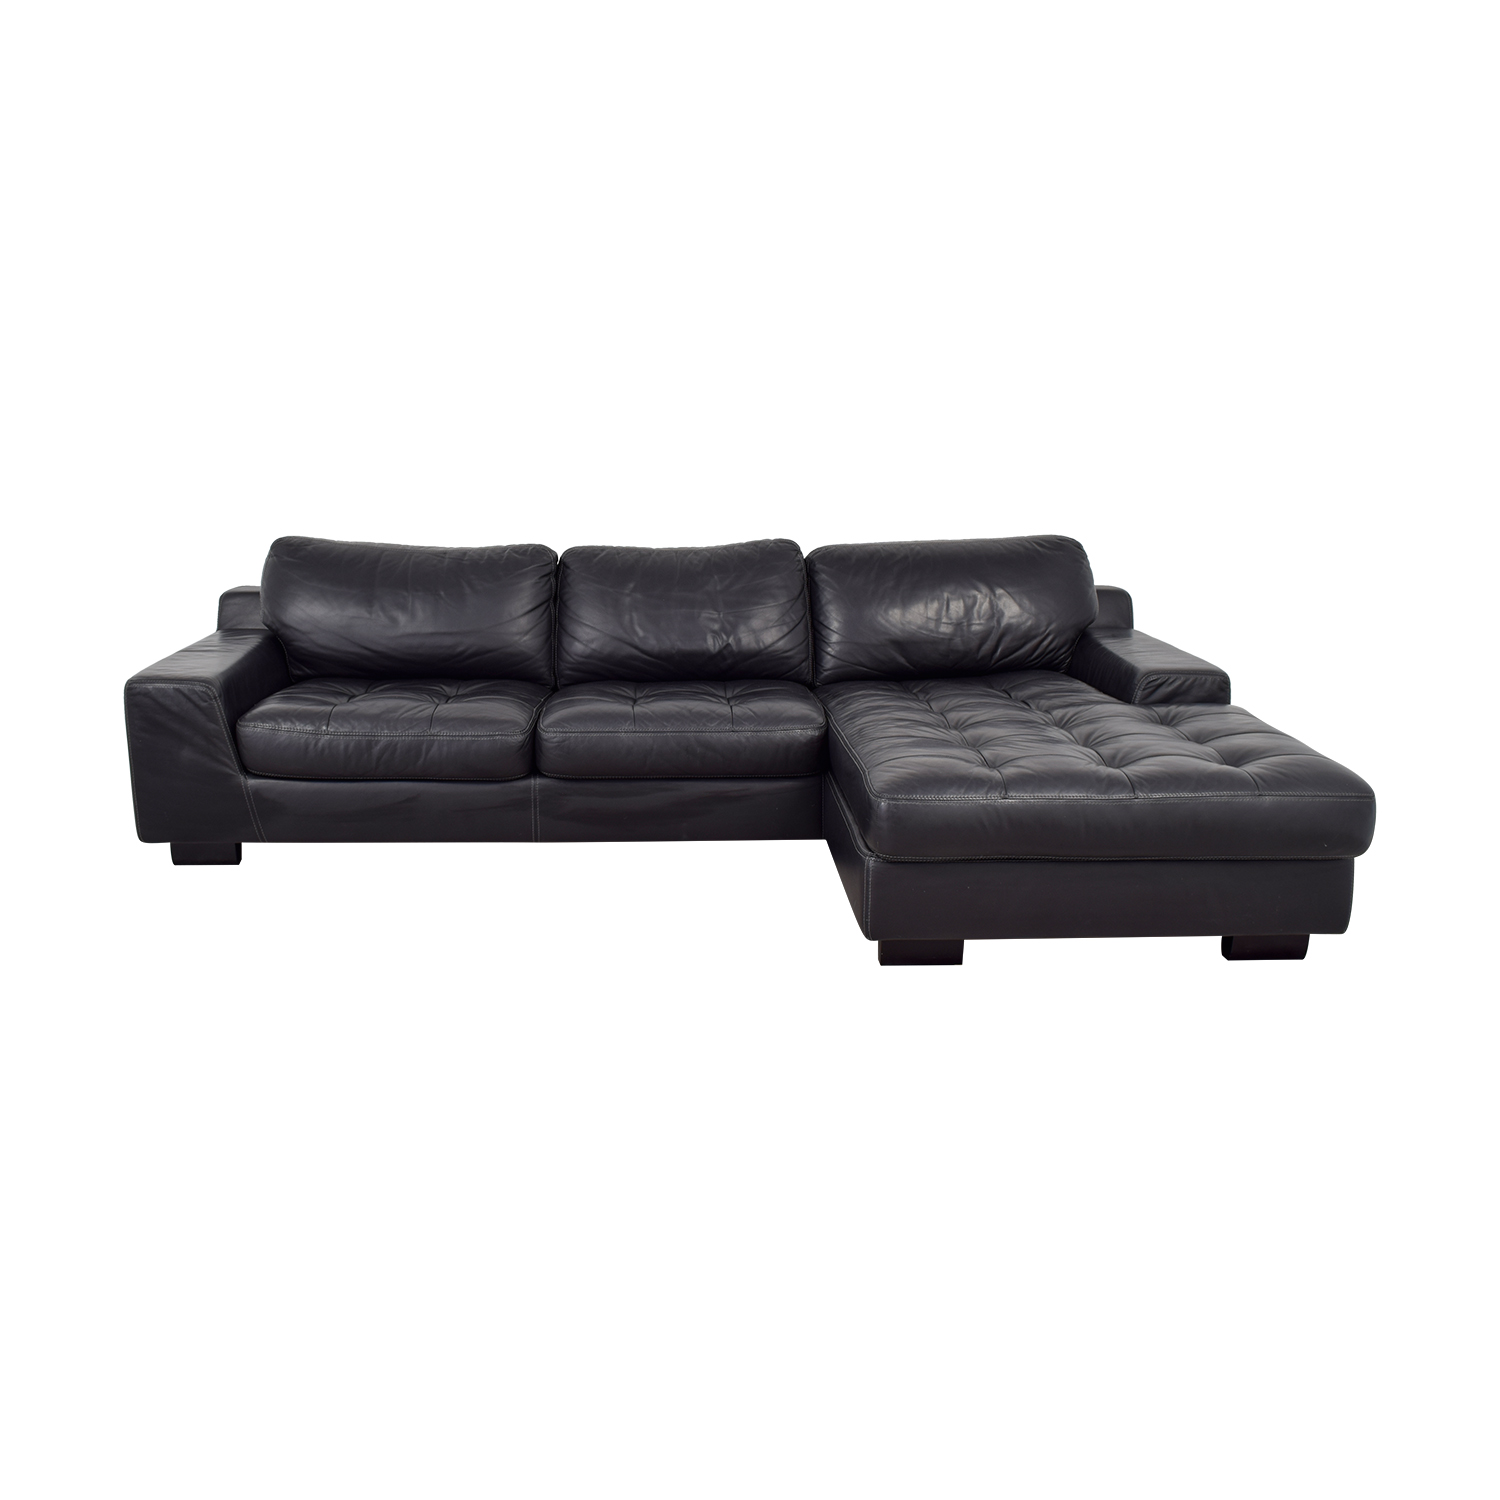 51% OFF - W. Schillig W. Schillig Black Tufted Leather Chaise Sectional /  Sofas